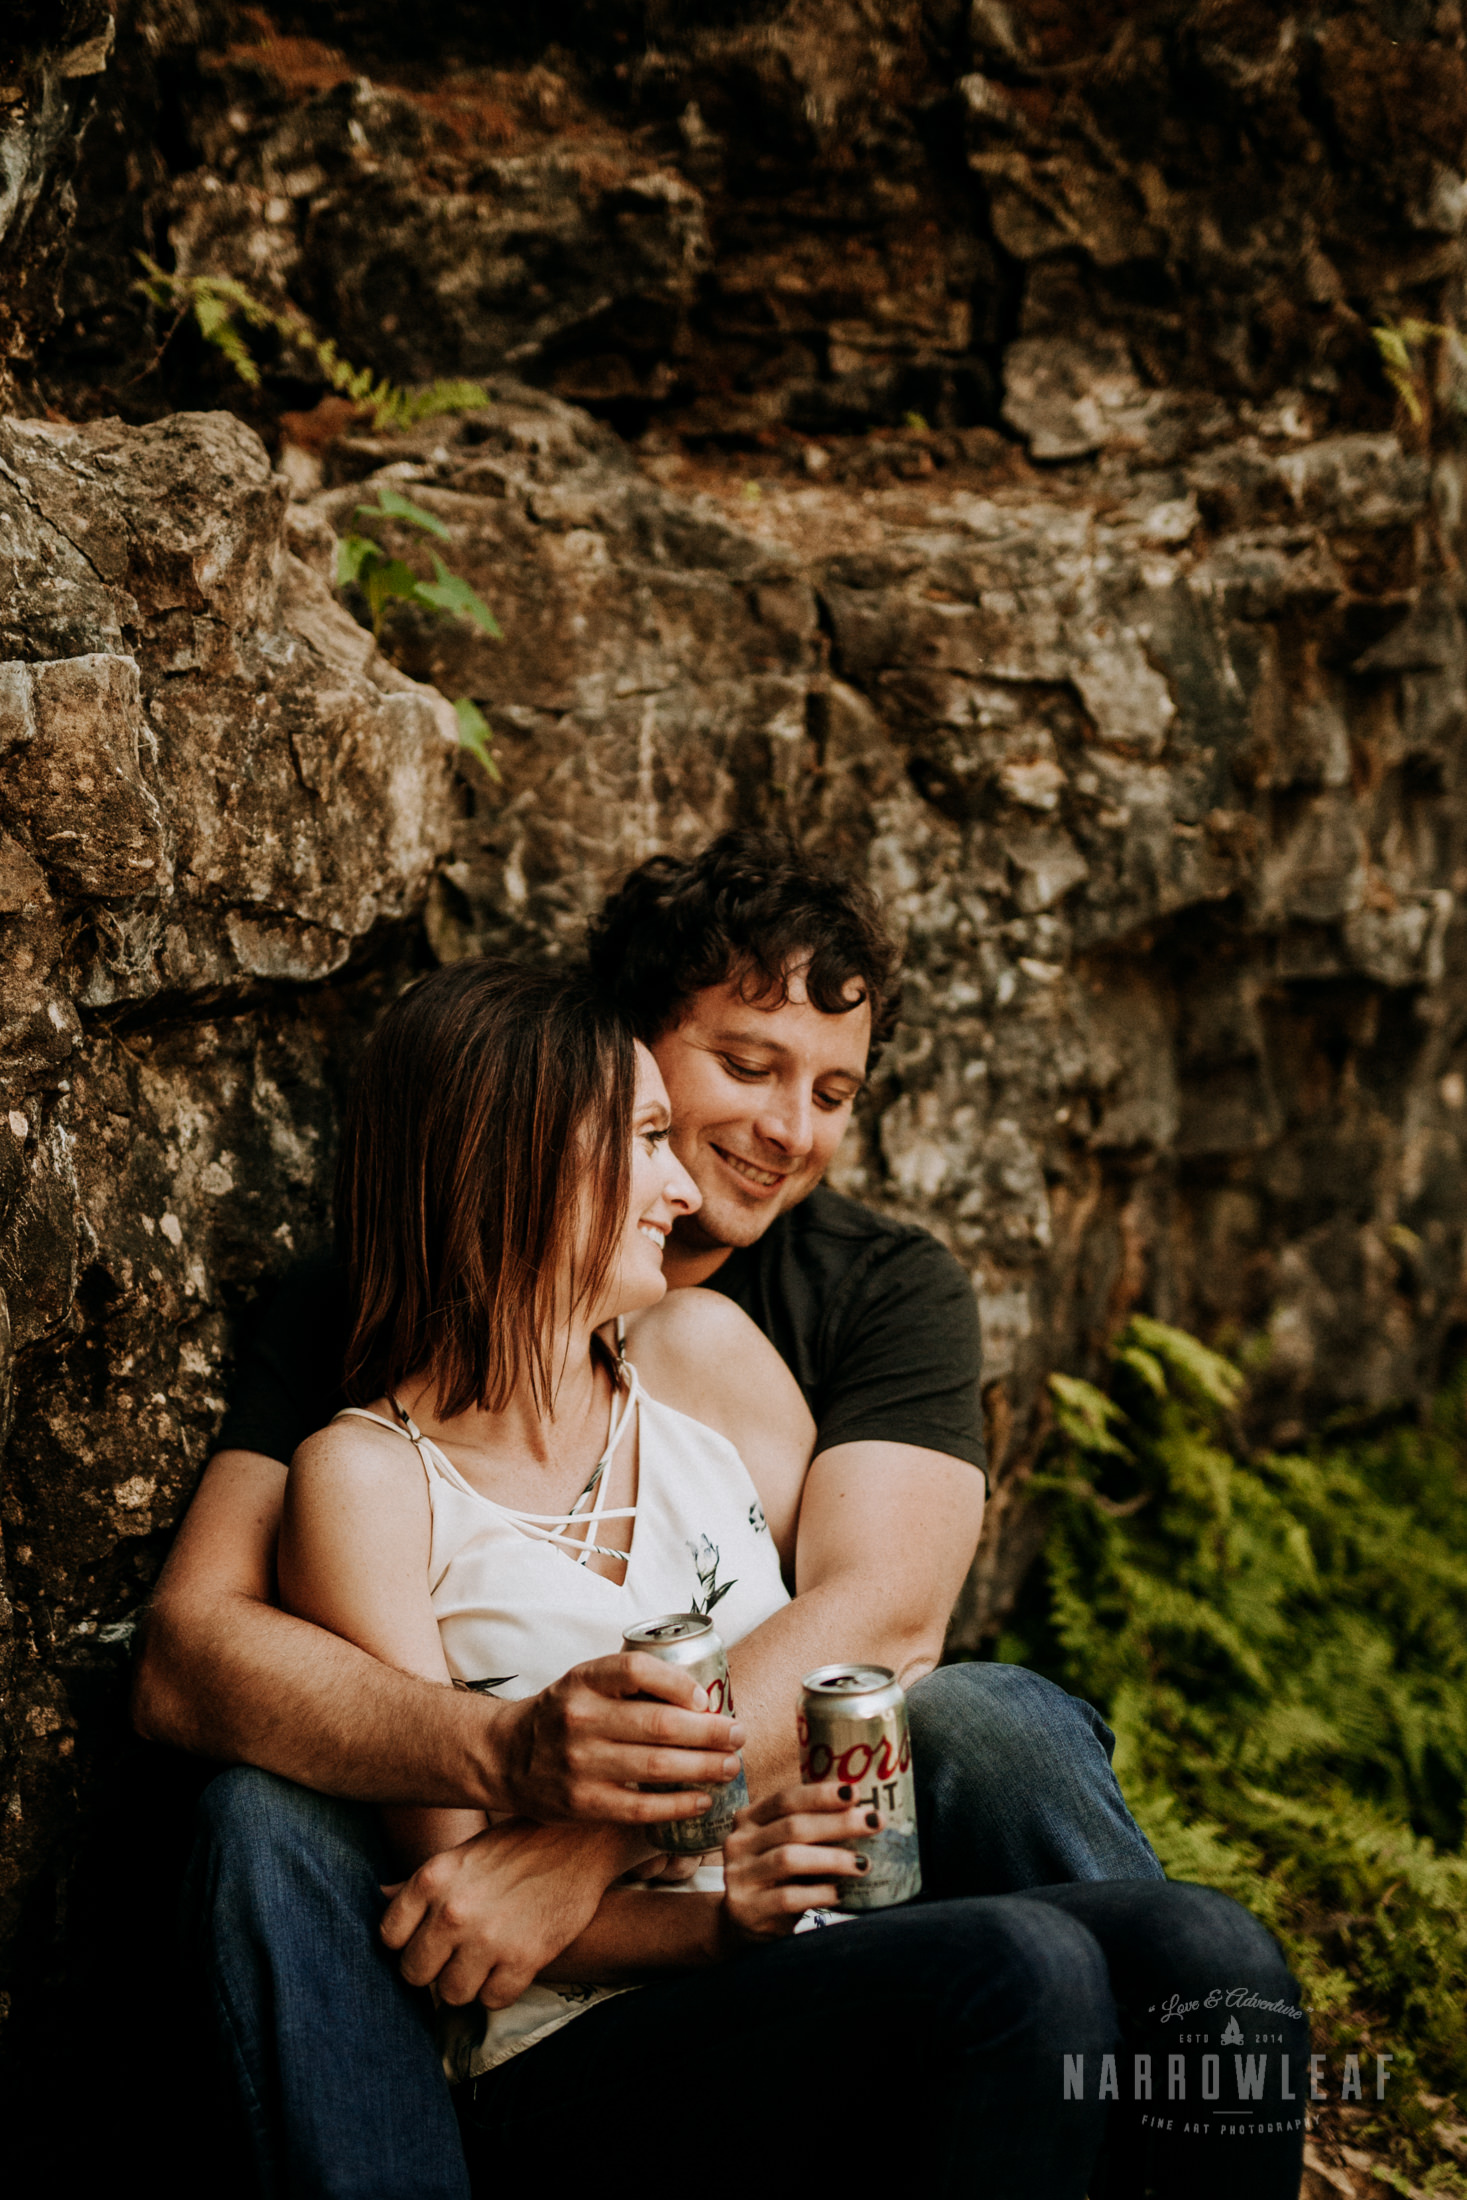 outdoor-engagement-photographer-Narrowleaf_Love_and_Adventure_Photography-1961.jpg